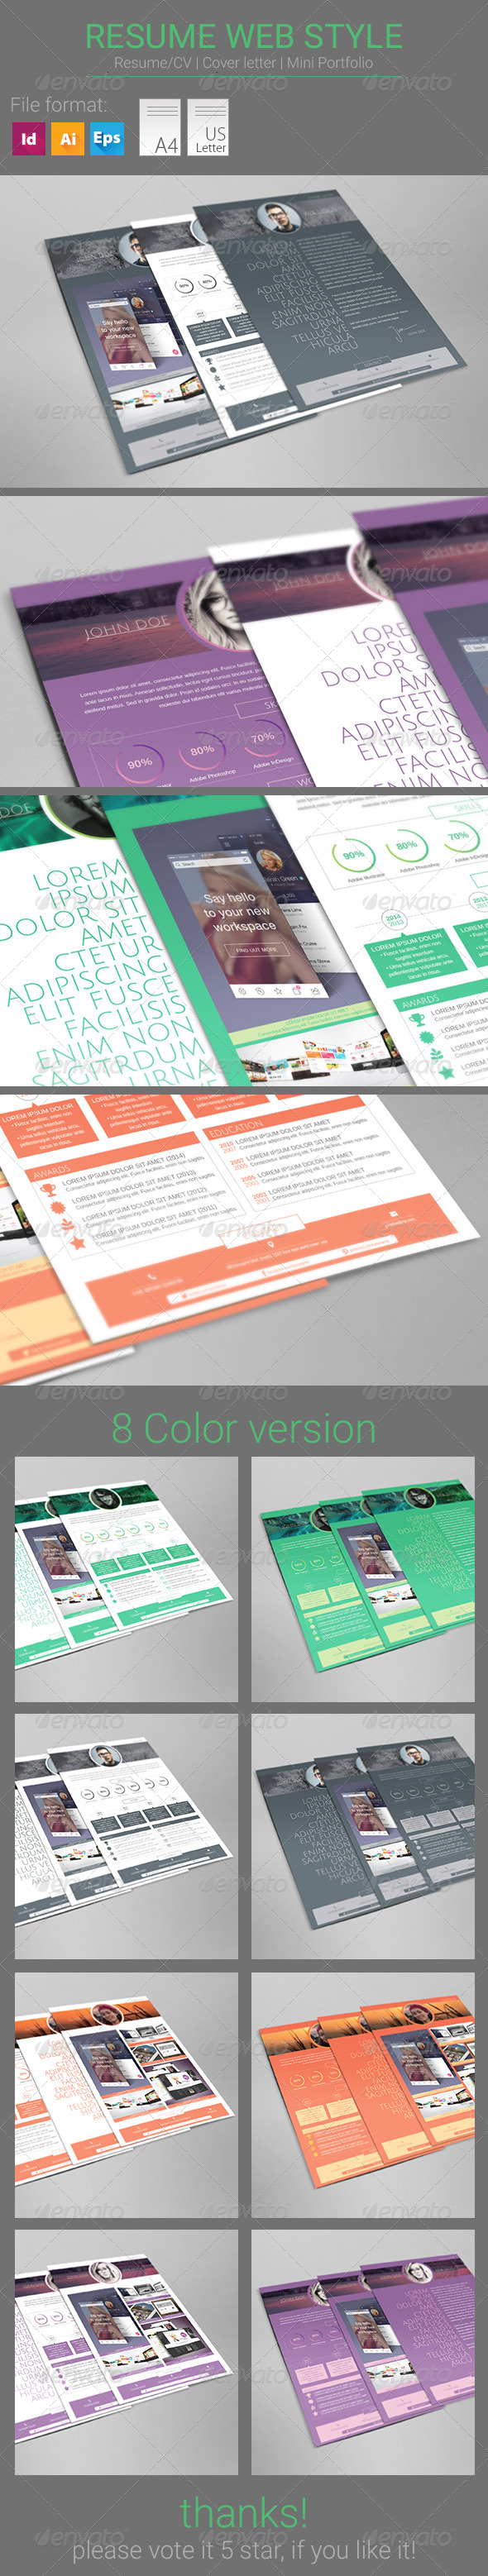 GraphicRiver Resume Web Style 8329909